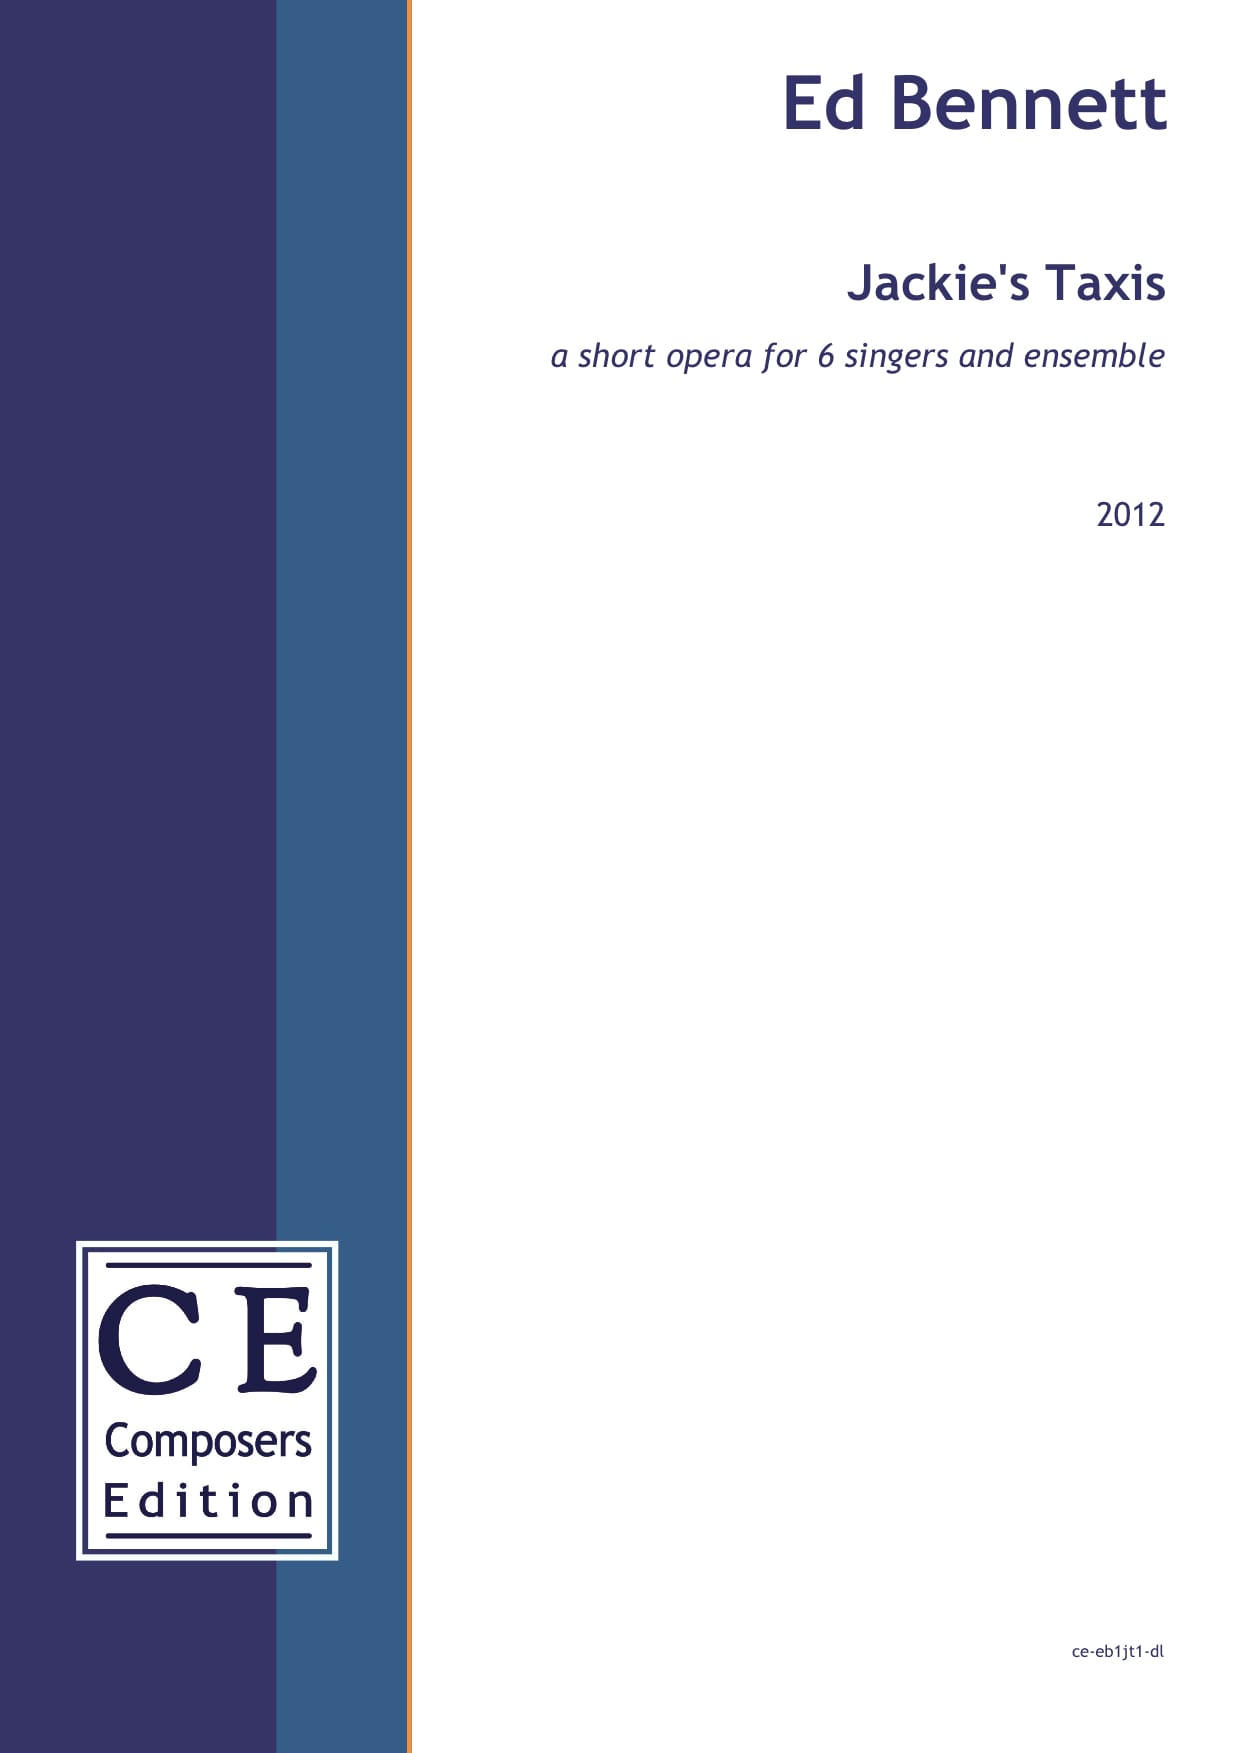 Ed Bennett: Jackie's Taxis a short opera for 6 singers and ensemble